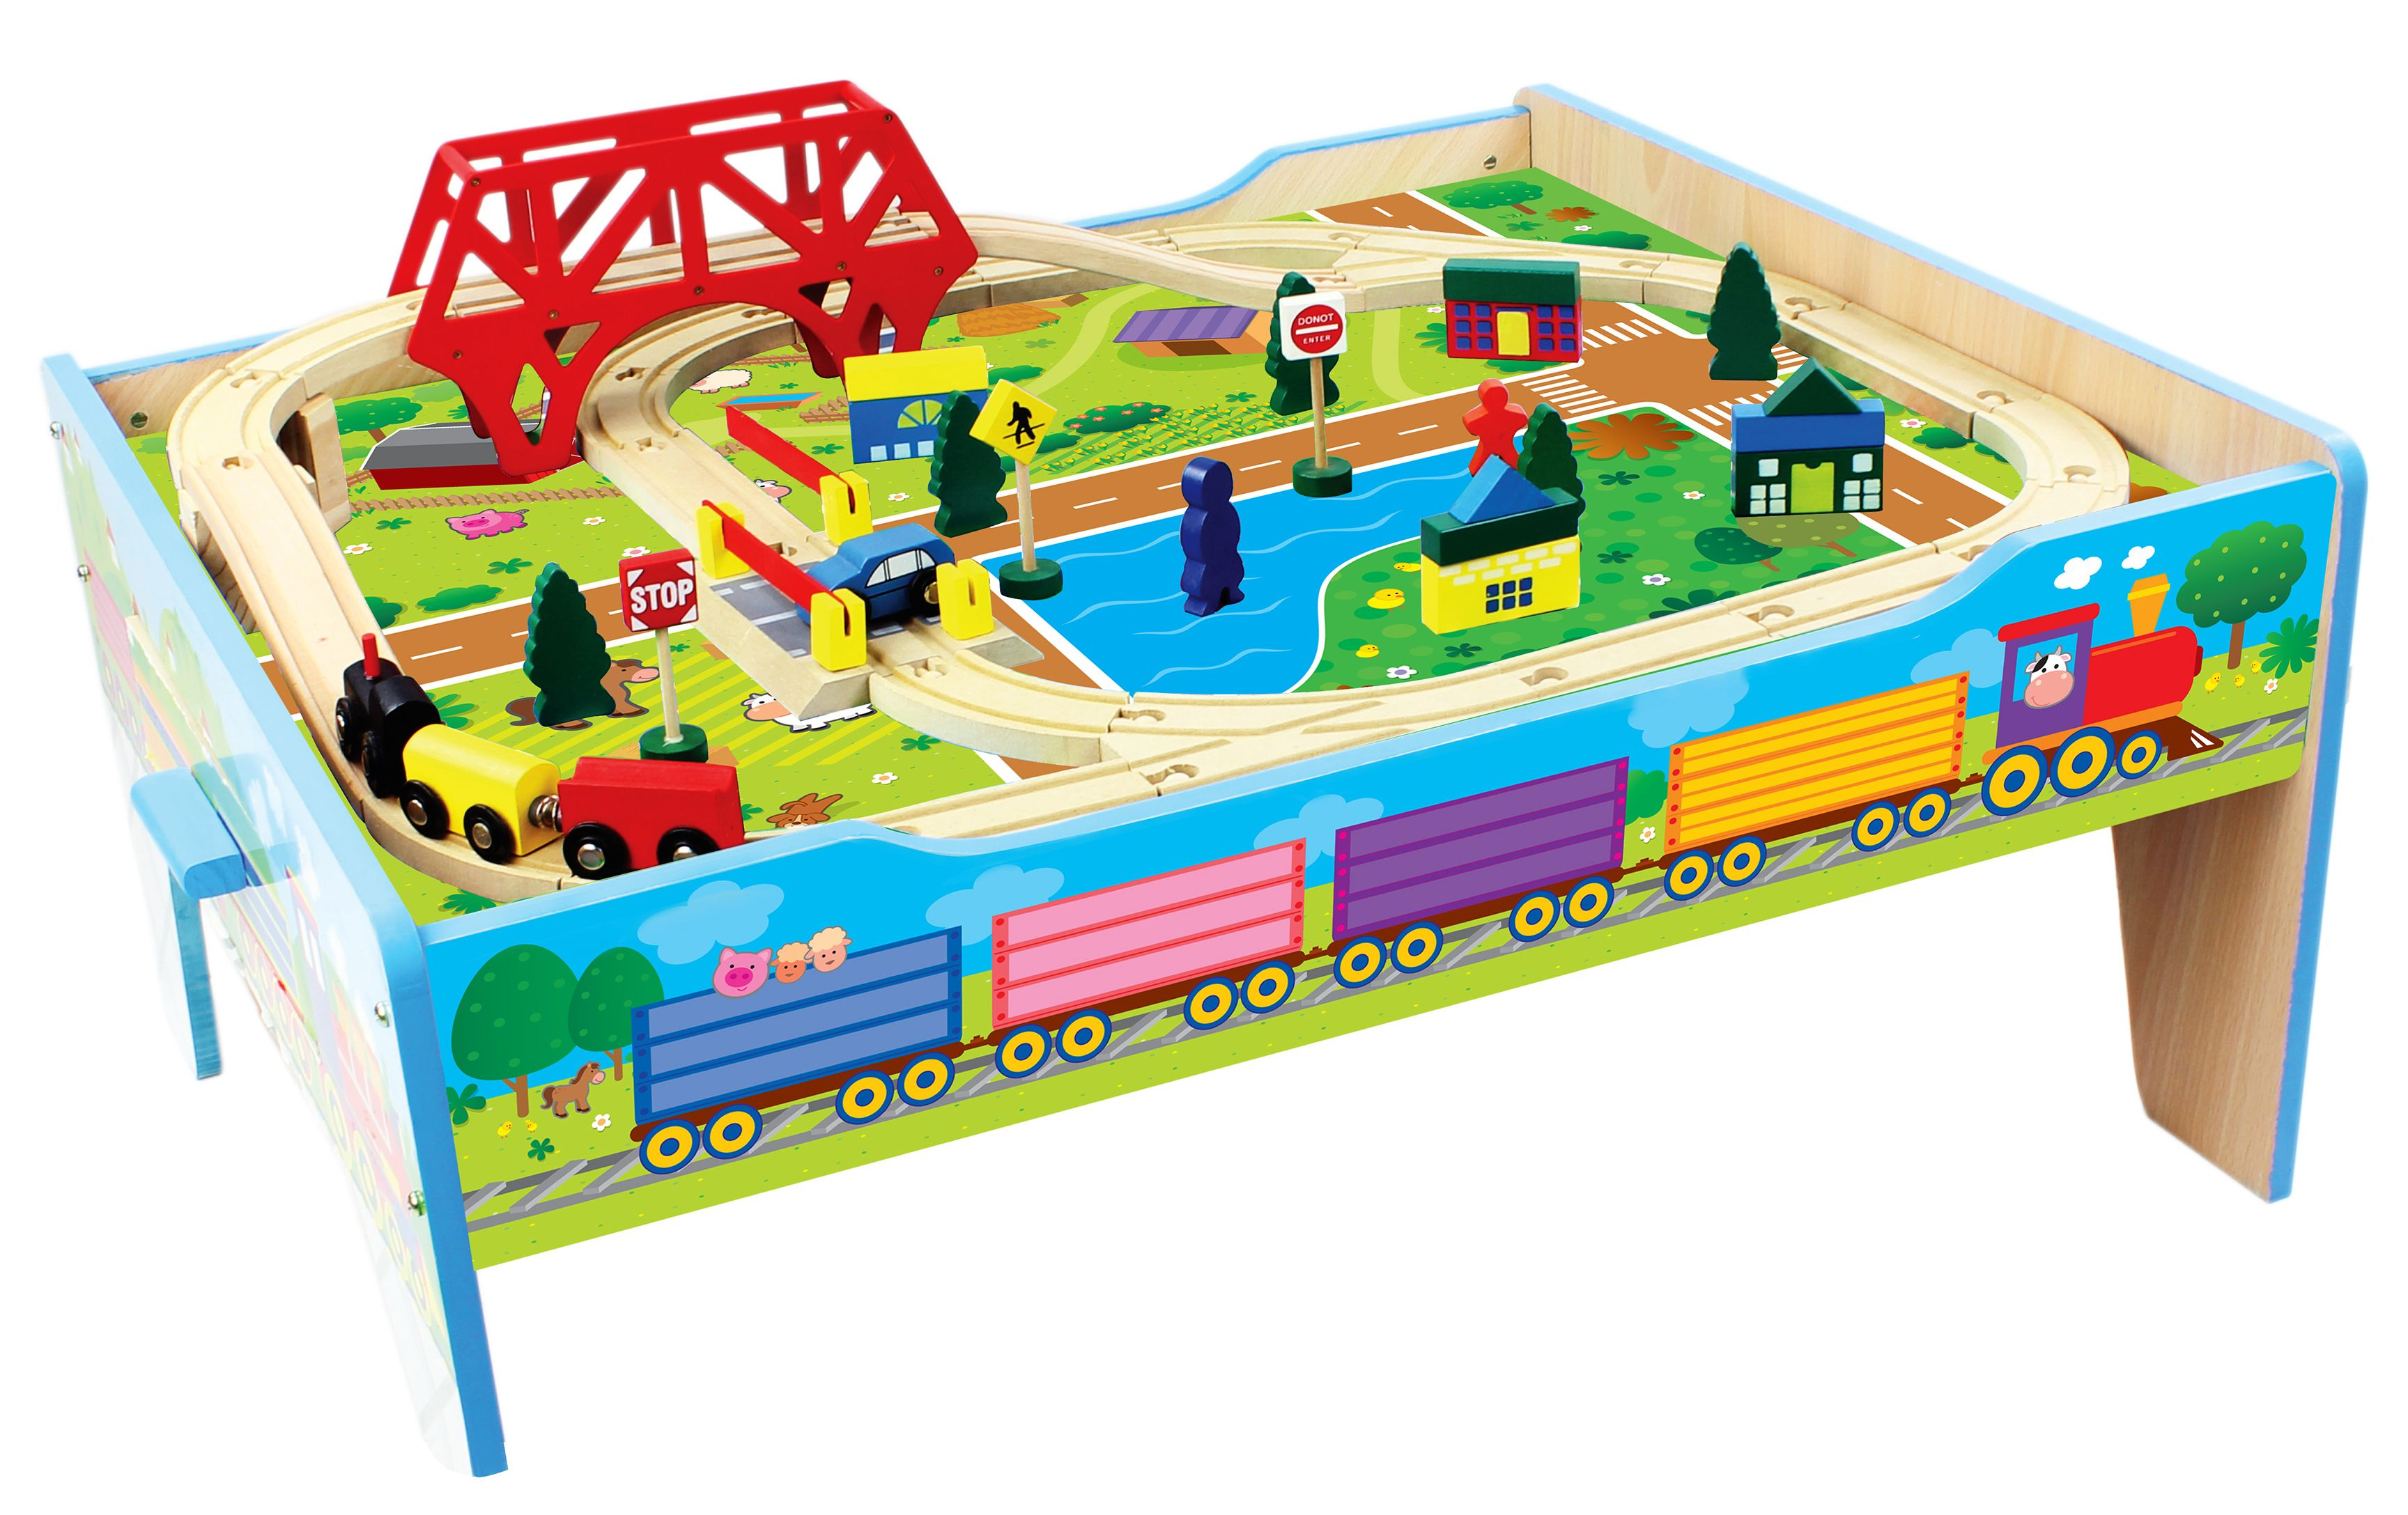 Kmart.com. Kmart DealsTrain TableTable AccessoriesWooden ...  sc 1 st  Pinterest & Small world play table. From Kmart   Toys to Make   Pinterest ...